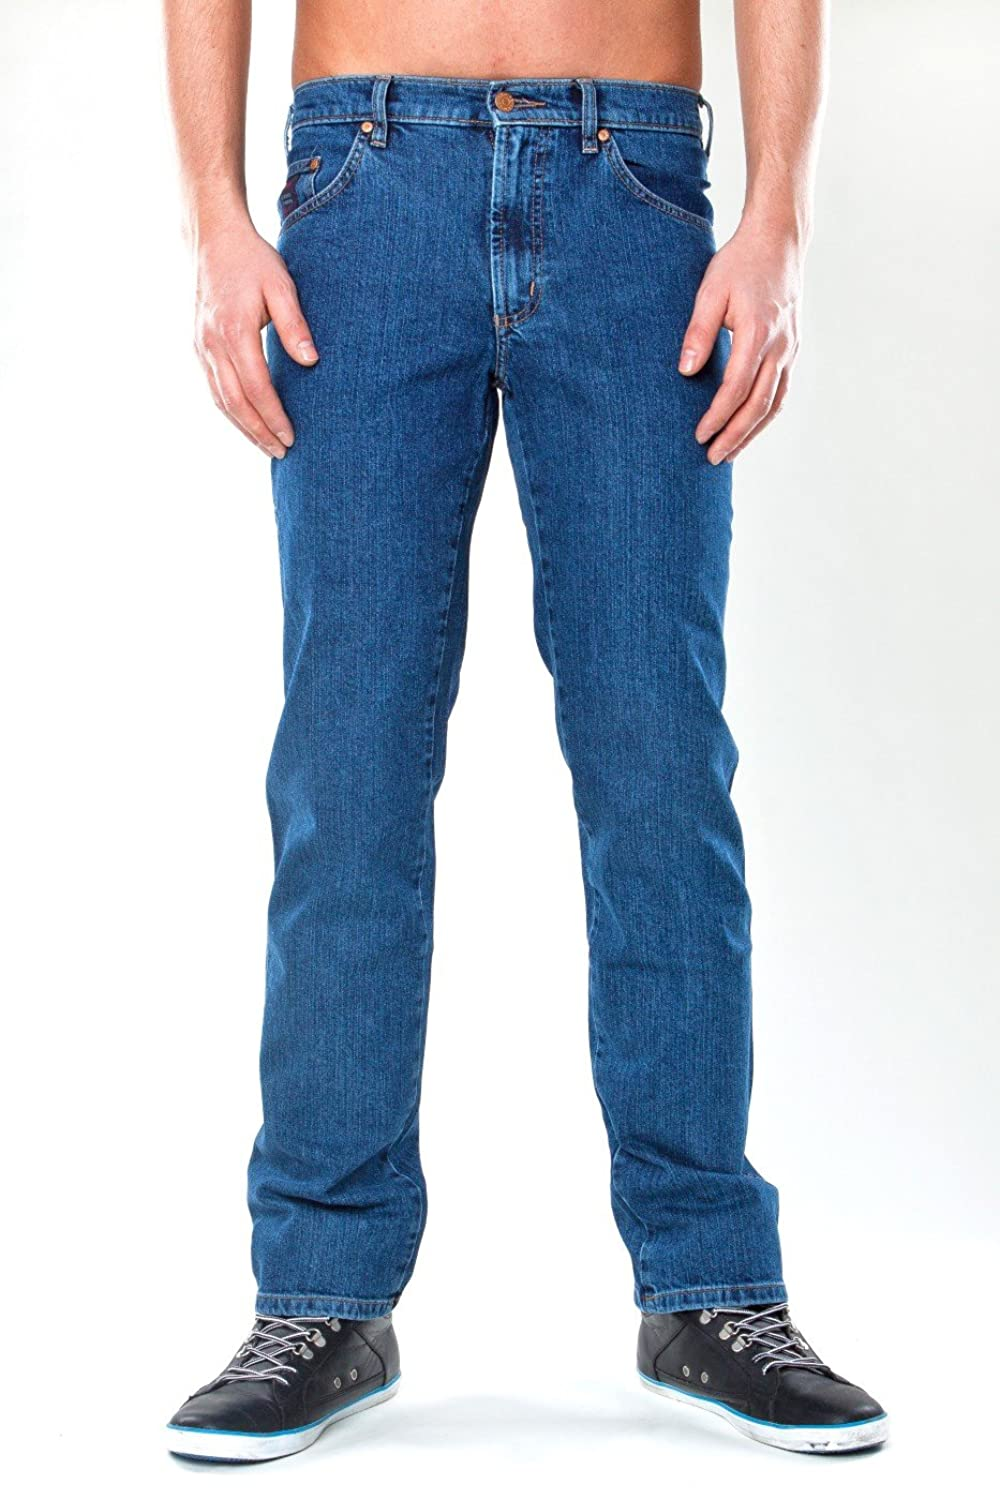 REVILS AUTHENTIC JEANSWEAR Men's Trousers Blue indigo stone washed